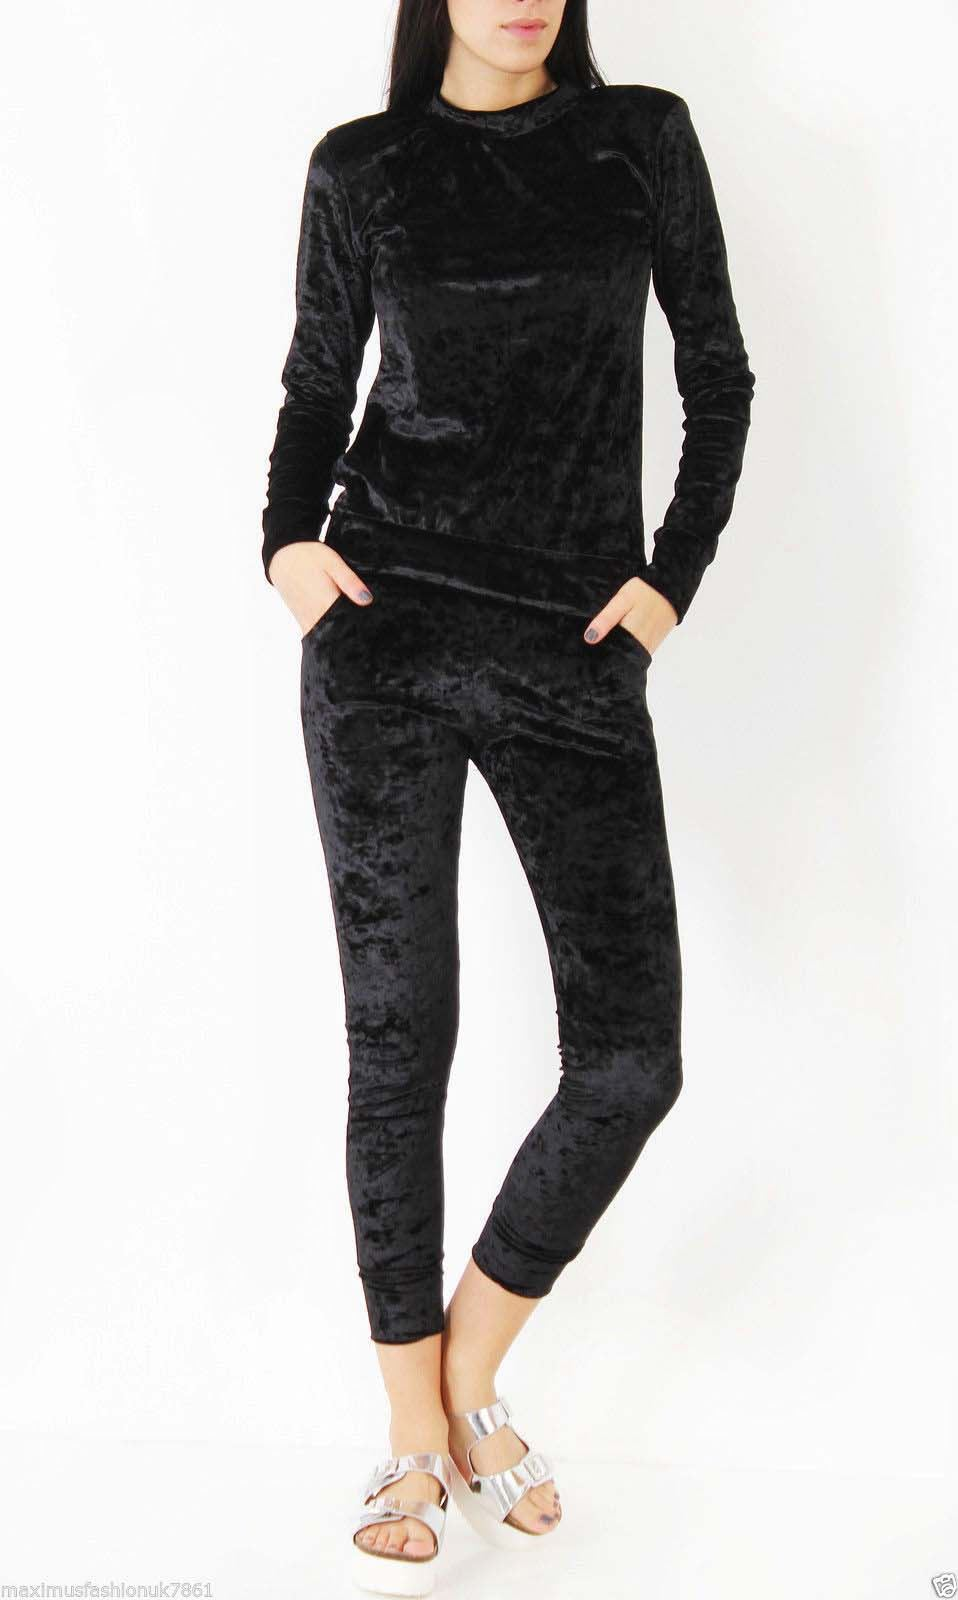 Discover our collection of ASOS loungewear for women. Check out our full range of loungewear set from comfy joggers & jersey tops to cosy leggings & pjs.